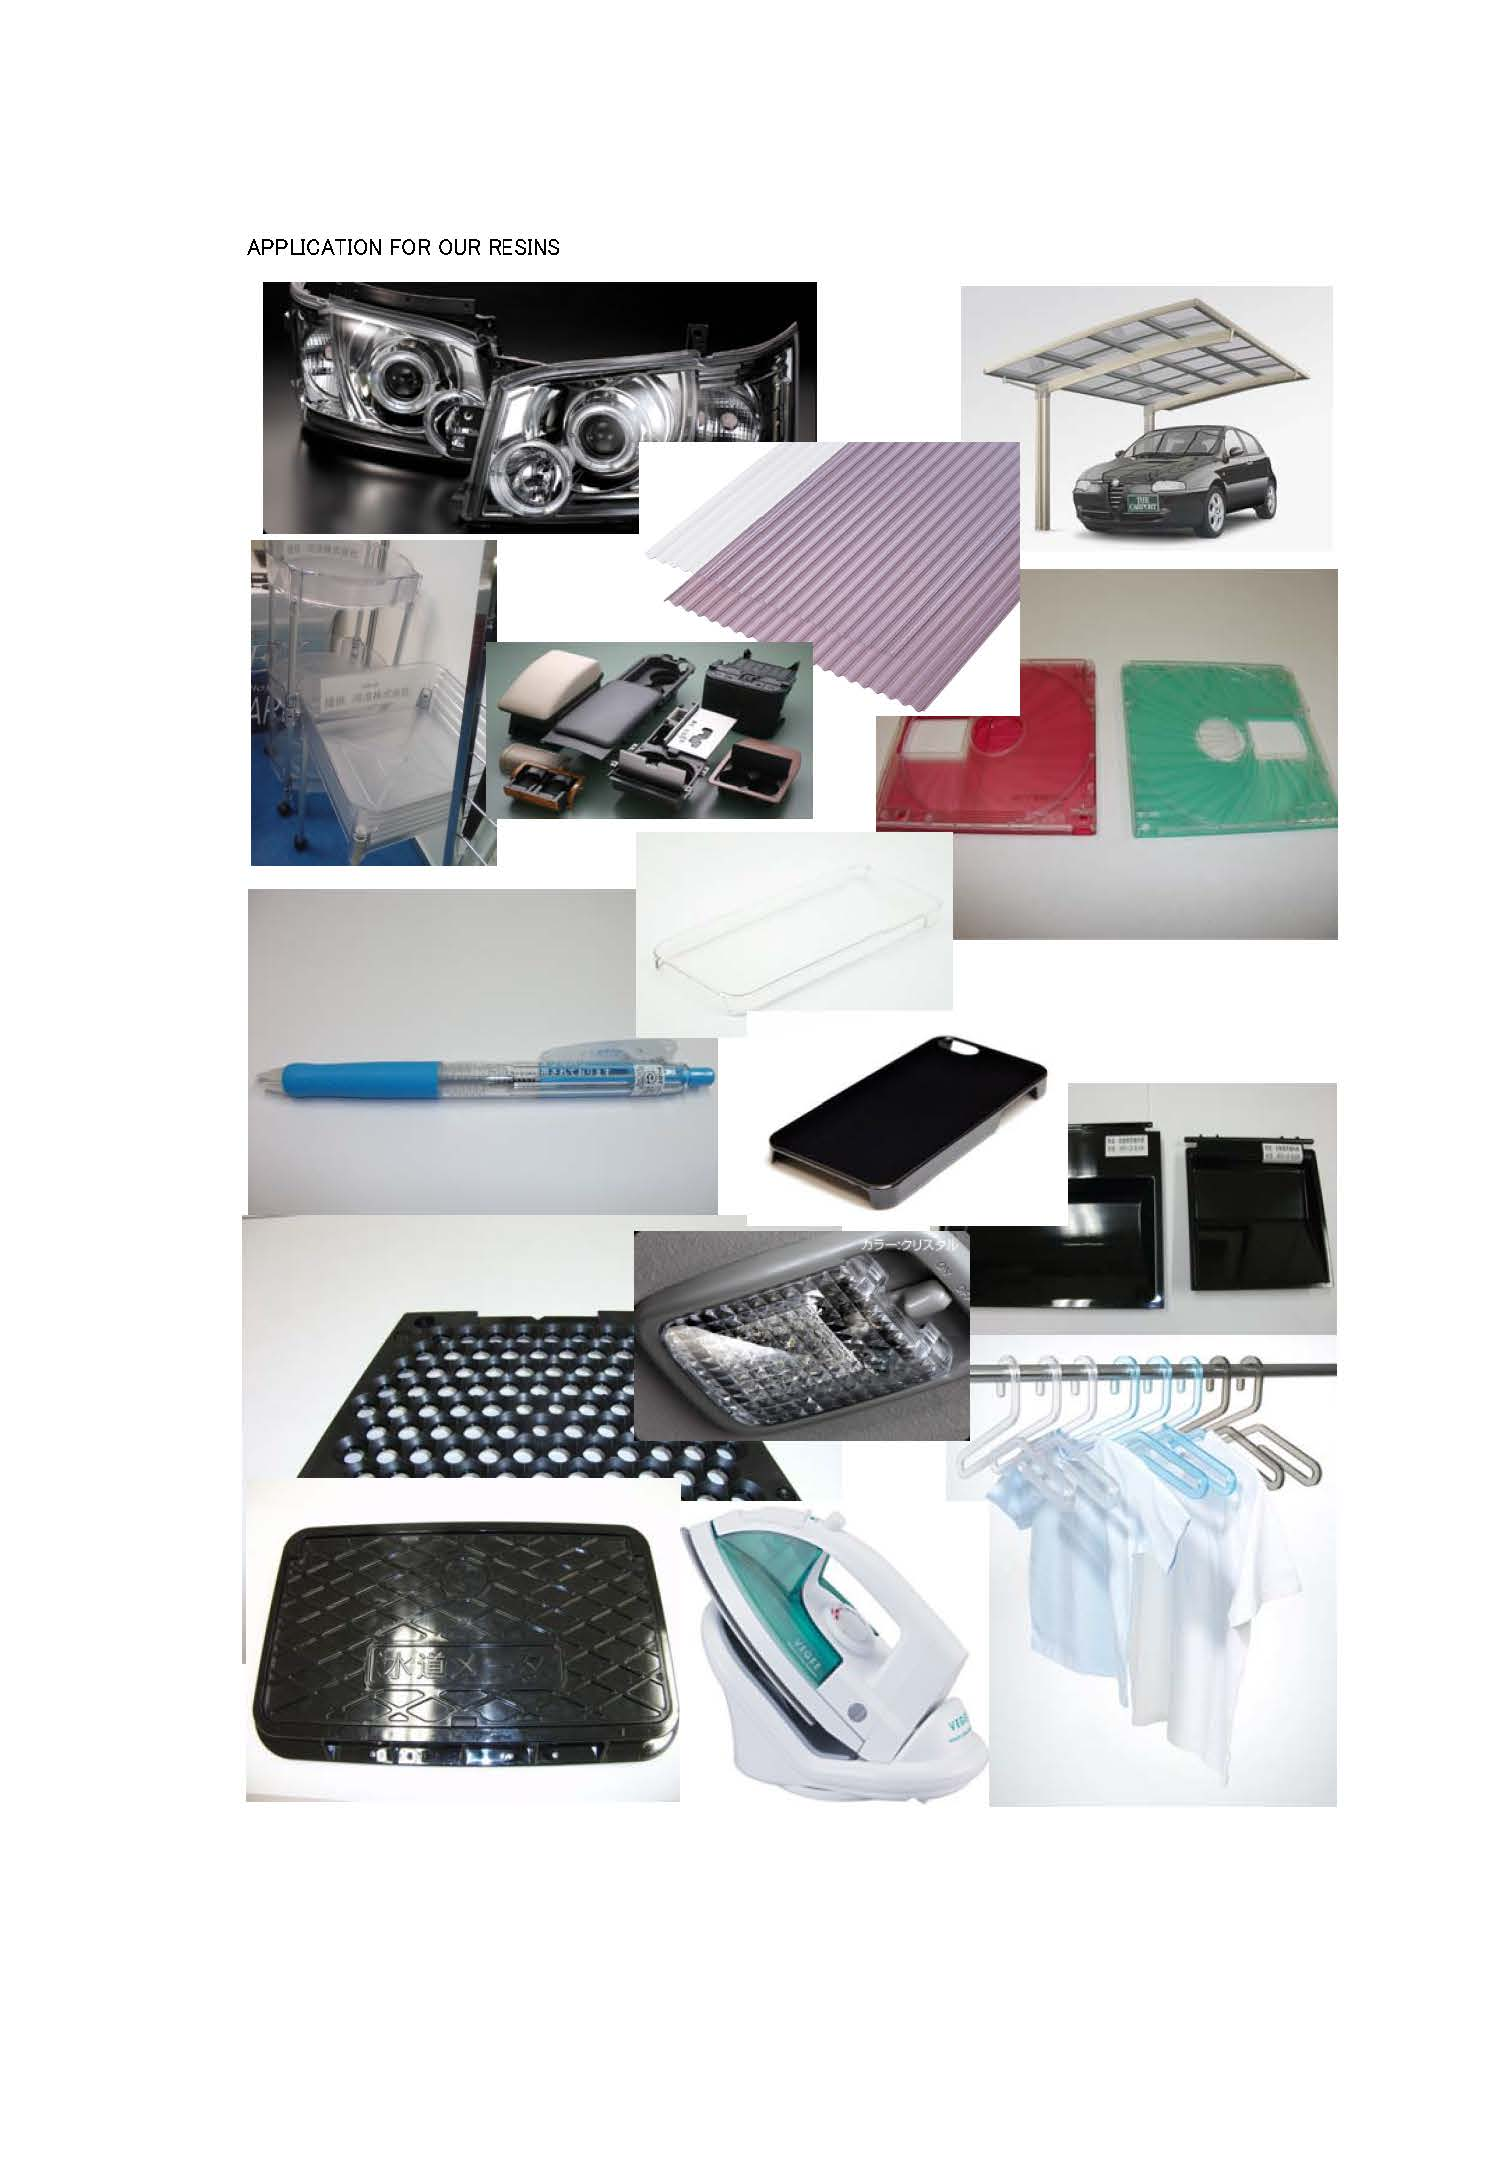 Image of Engineering plastics (Polycarbonate, PC/PET, PSU, PES, ABS, PC/ABS, TPU, TPO, POM, PEEK and others)